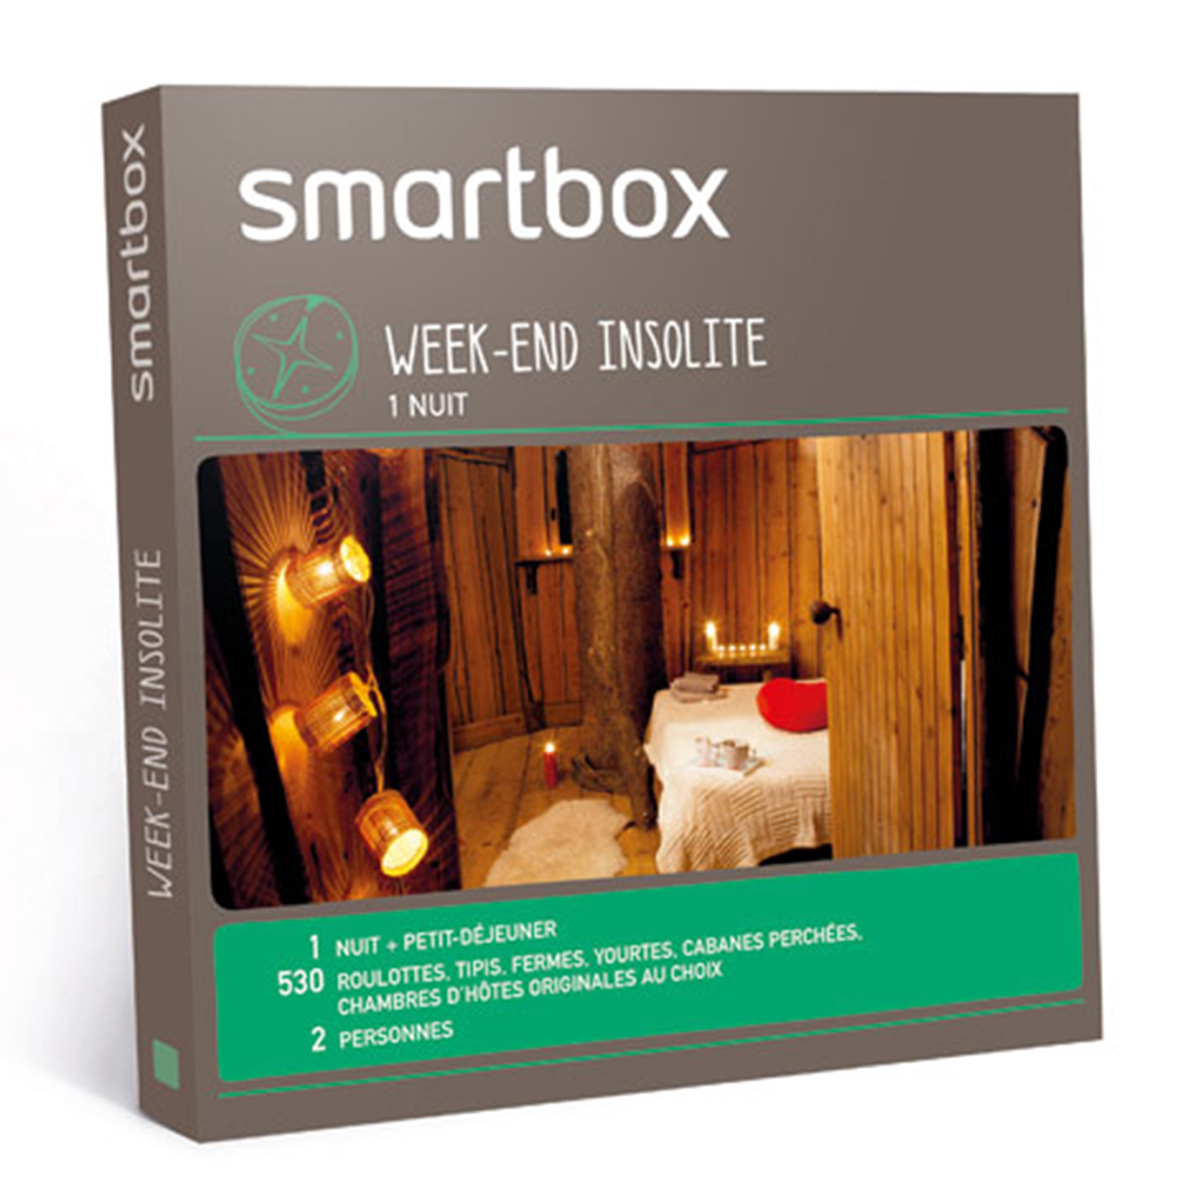 Coffret Smartbox - Week-end insolite